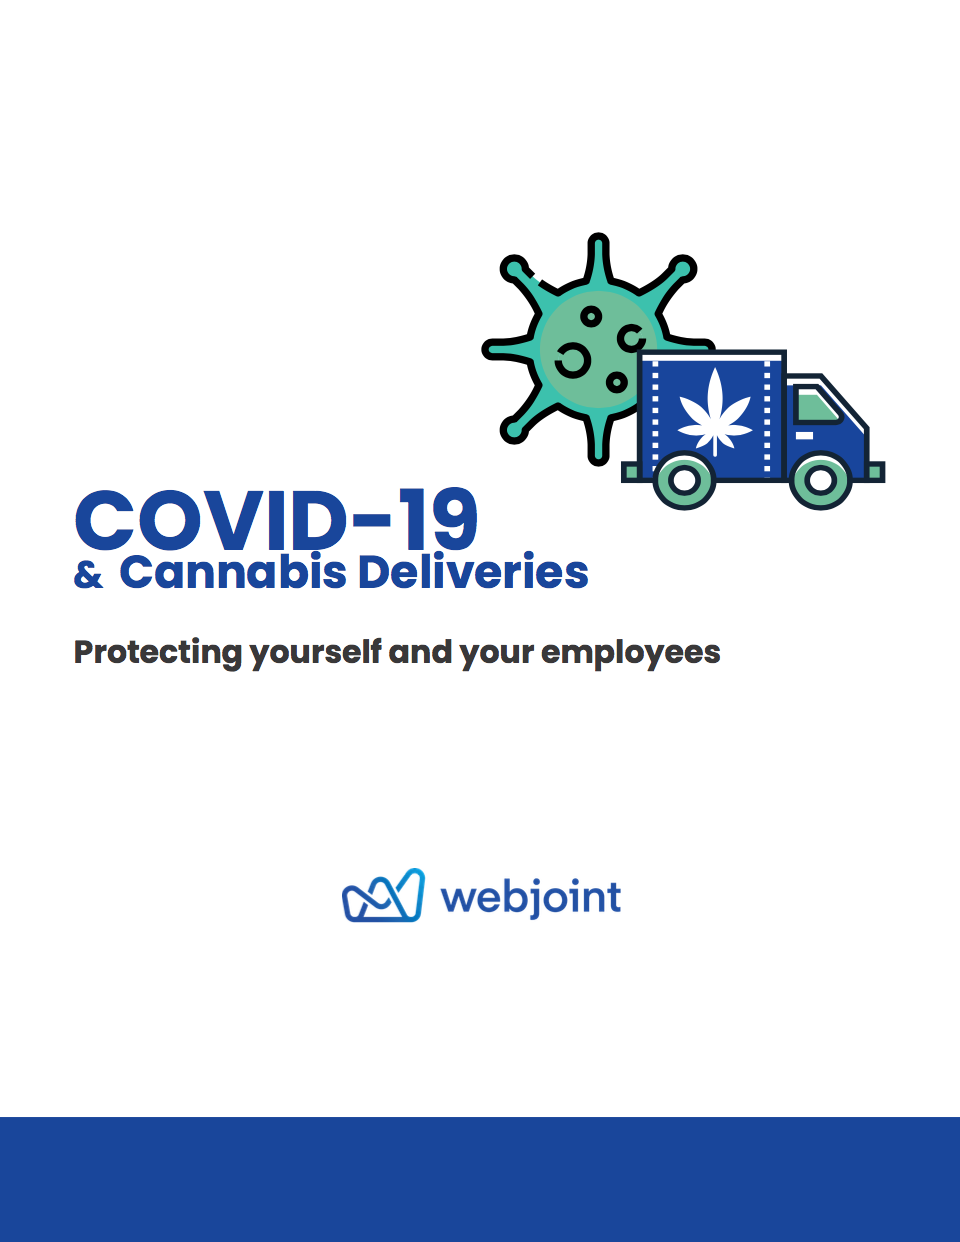 COVID-19 and Your Cannabis Delivery